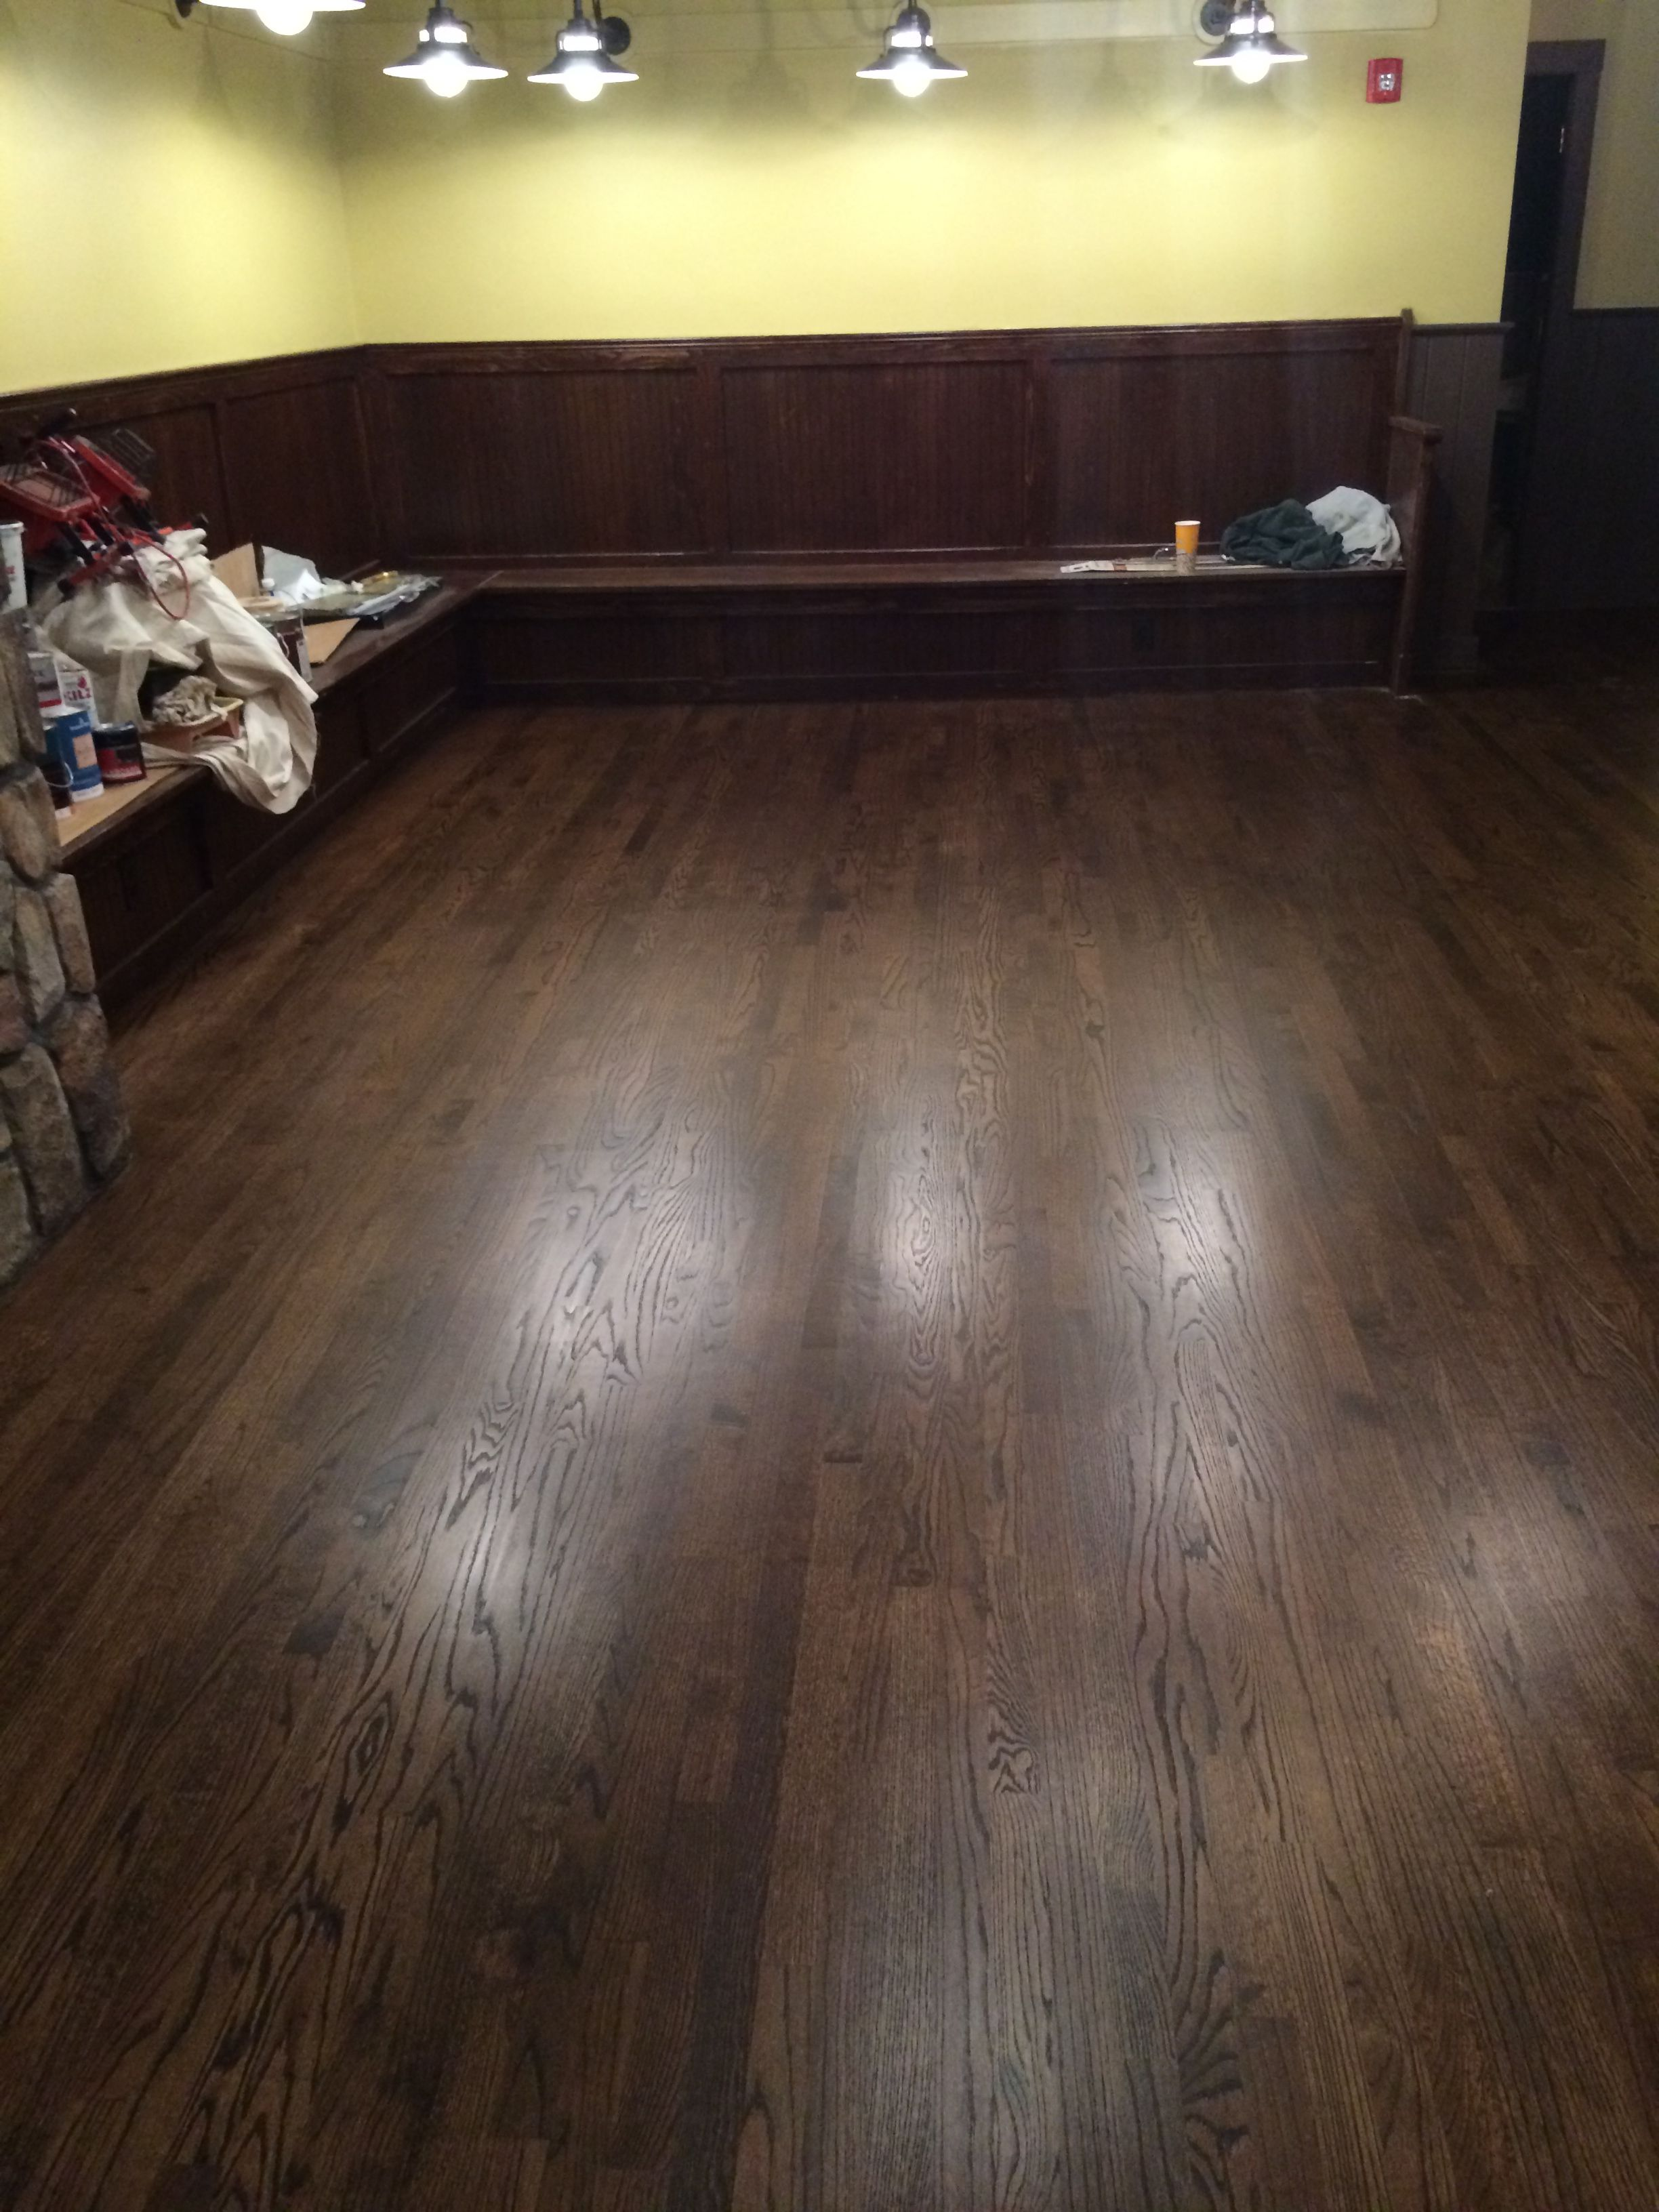 2 1 4 Red Oak Hardwood Flooring Stained With Minwax Dark Walnut Finished With 1 Coat Of Bon Refinishing Hardwood Floors Hardwood Floor Colors Red Oak Floors